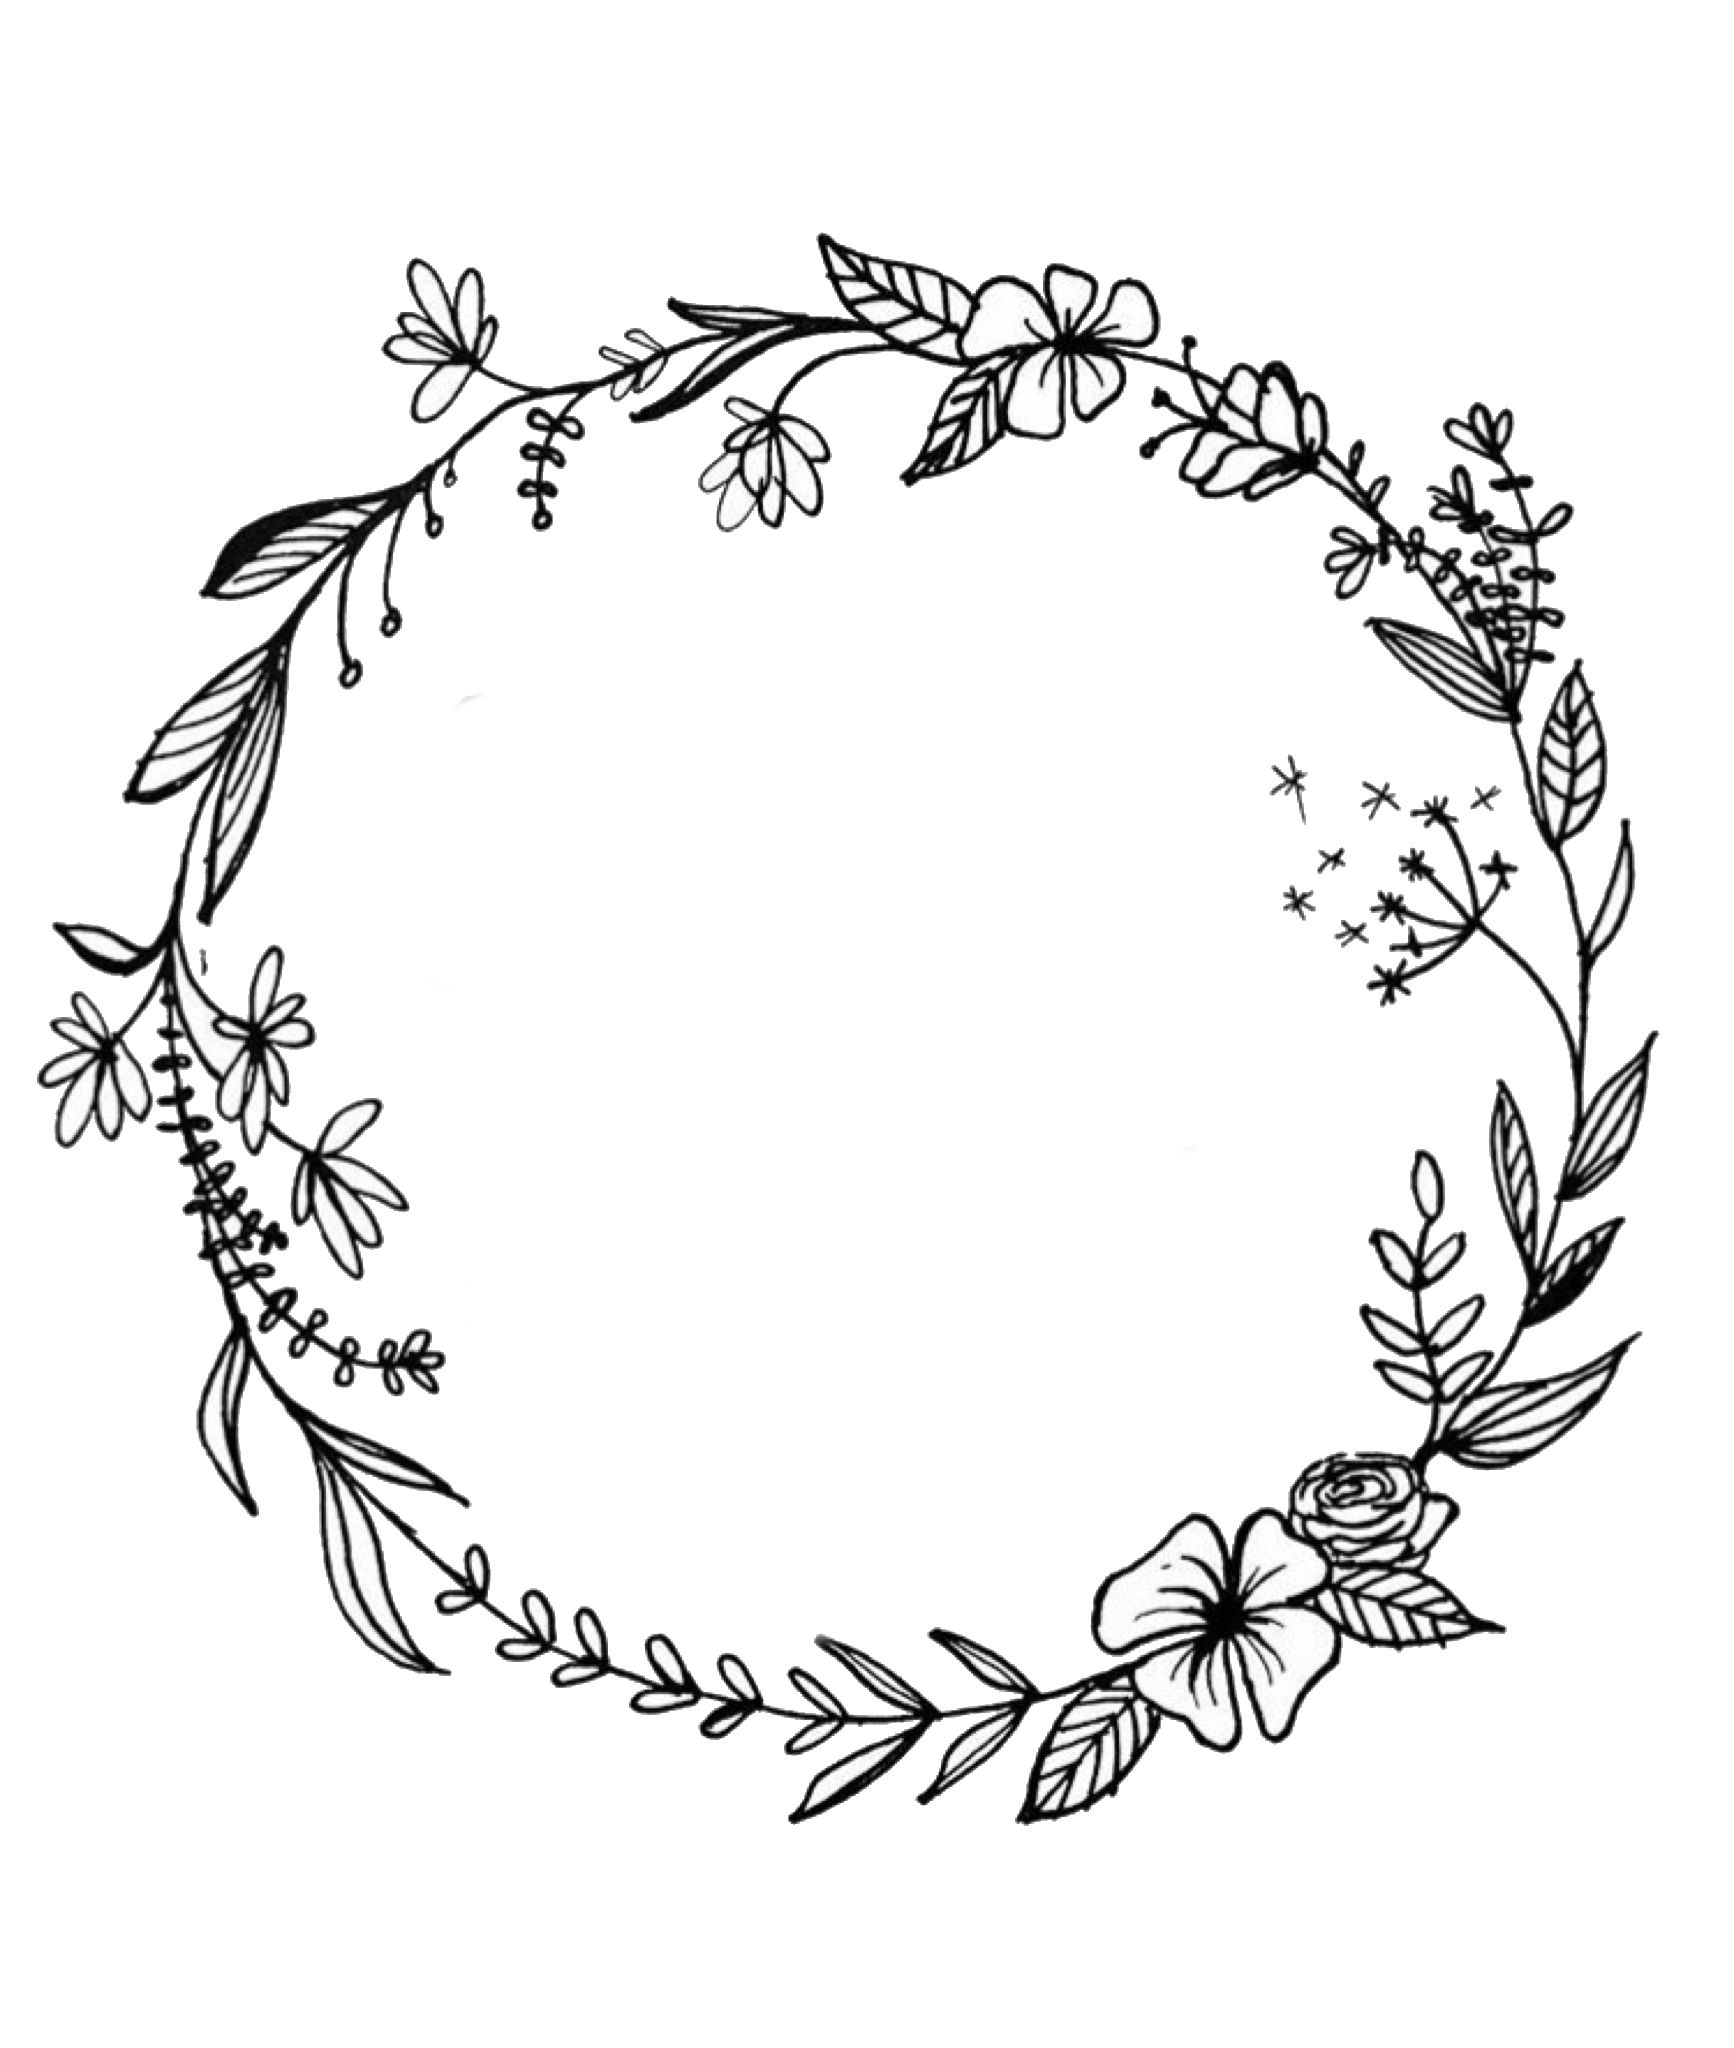 Floral Wreath Floral Wreath Drawing Wreath Drawing Flower Drawing